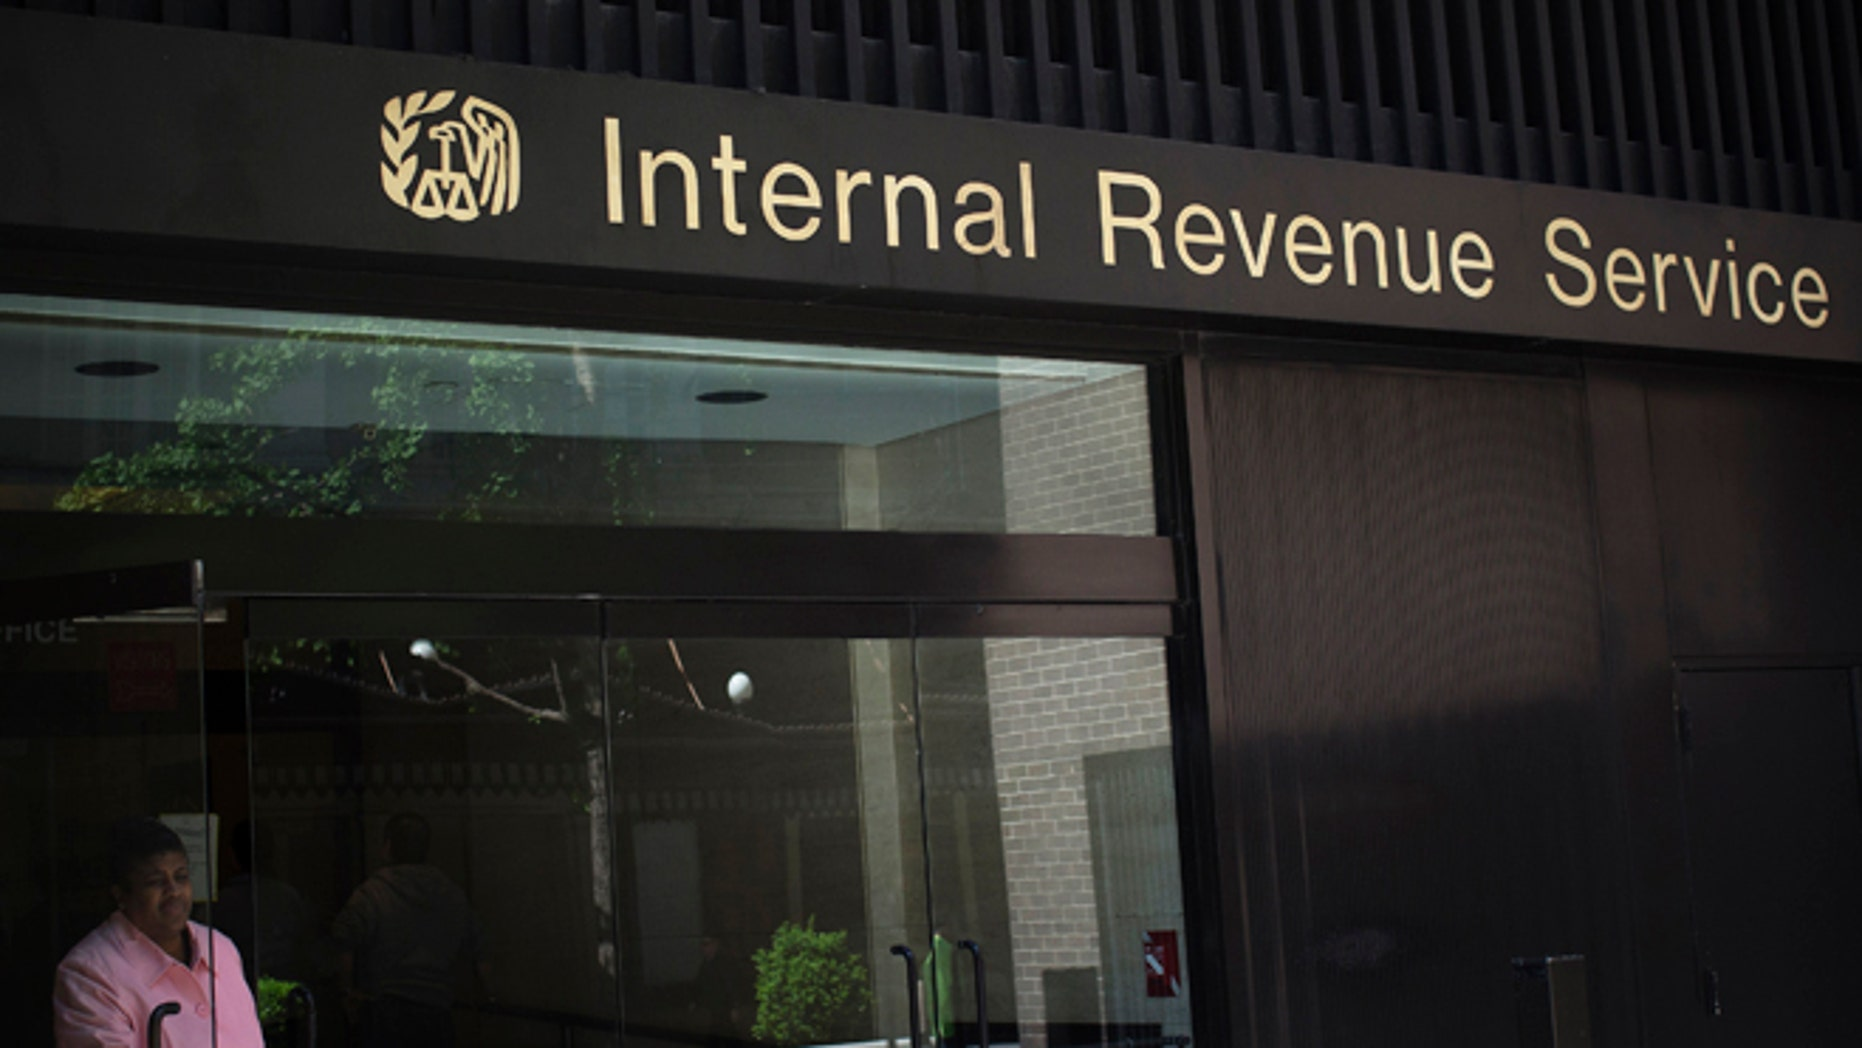 May 13, 2013: A woman walks out of the Internal Revenue Service building in New York.